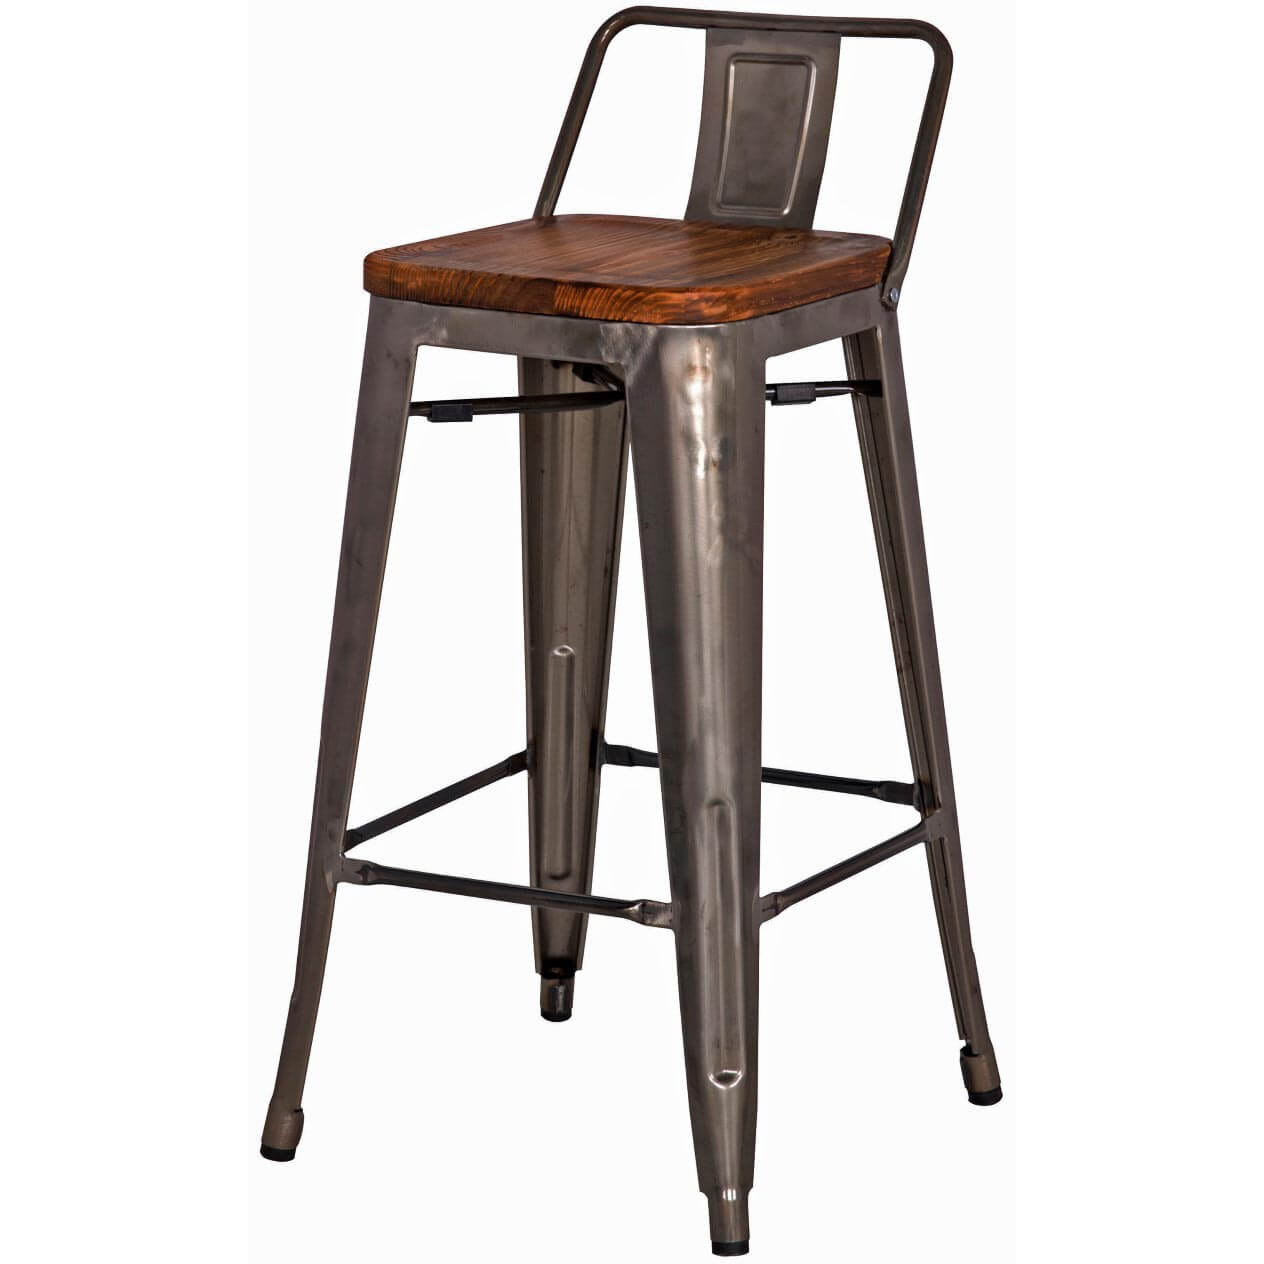 Metropolis Low Back Counter Stool Wood Seat Gunmetal Set of 4 Buy Online at Best Price - SohoMod  sc 1 st  SohoMod & Metropolis Low Back Counter Stool Wood Seat Gunmetal Set of 4 ... islam-shia.org